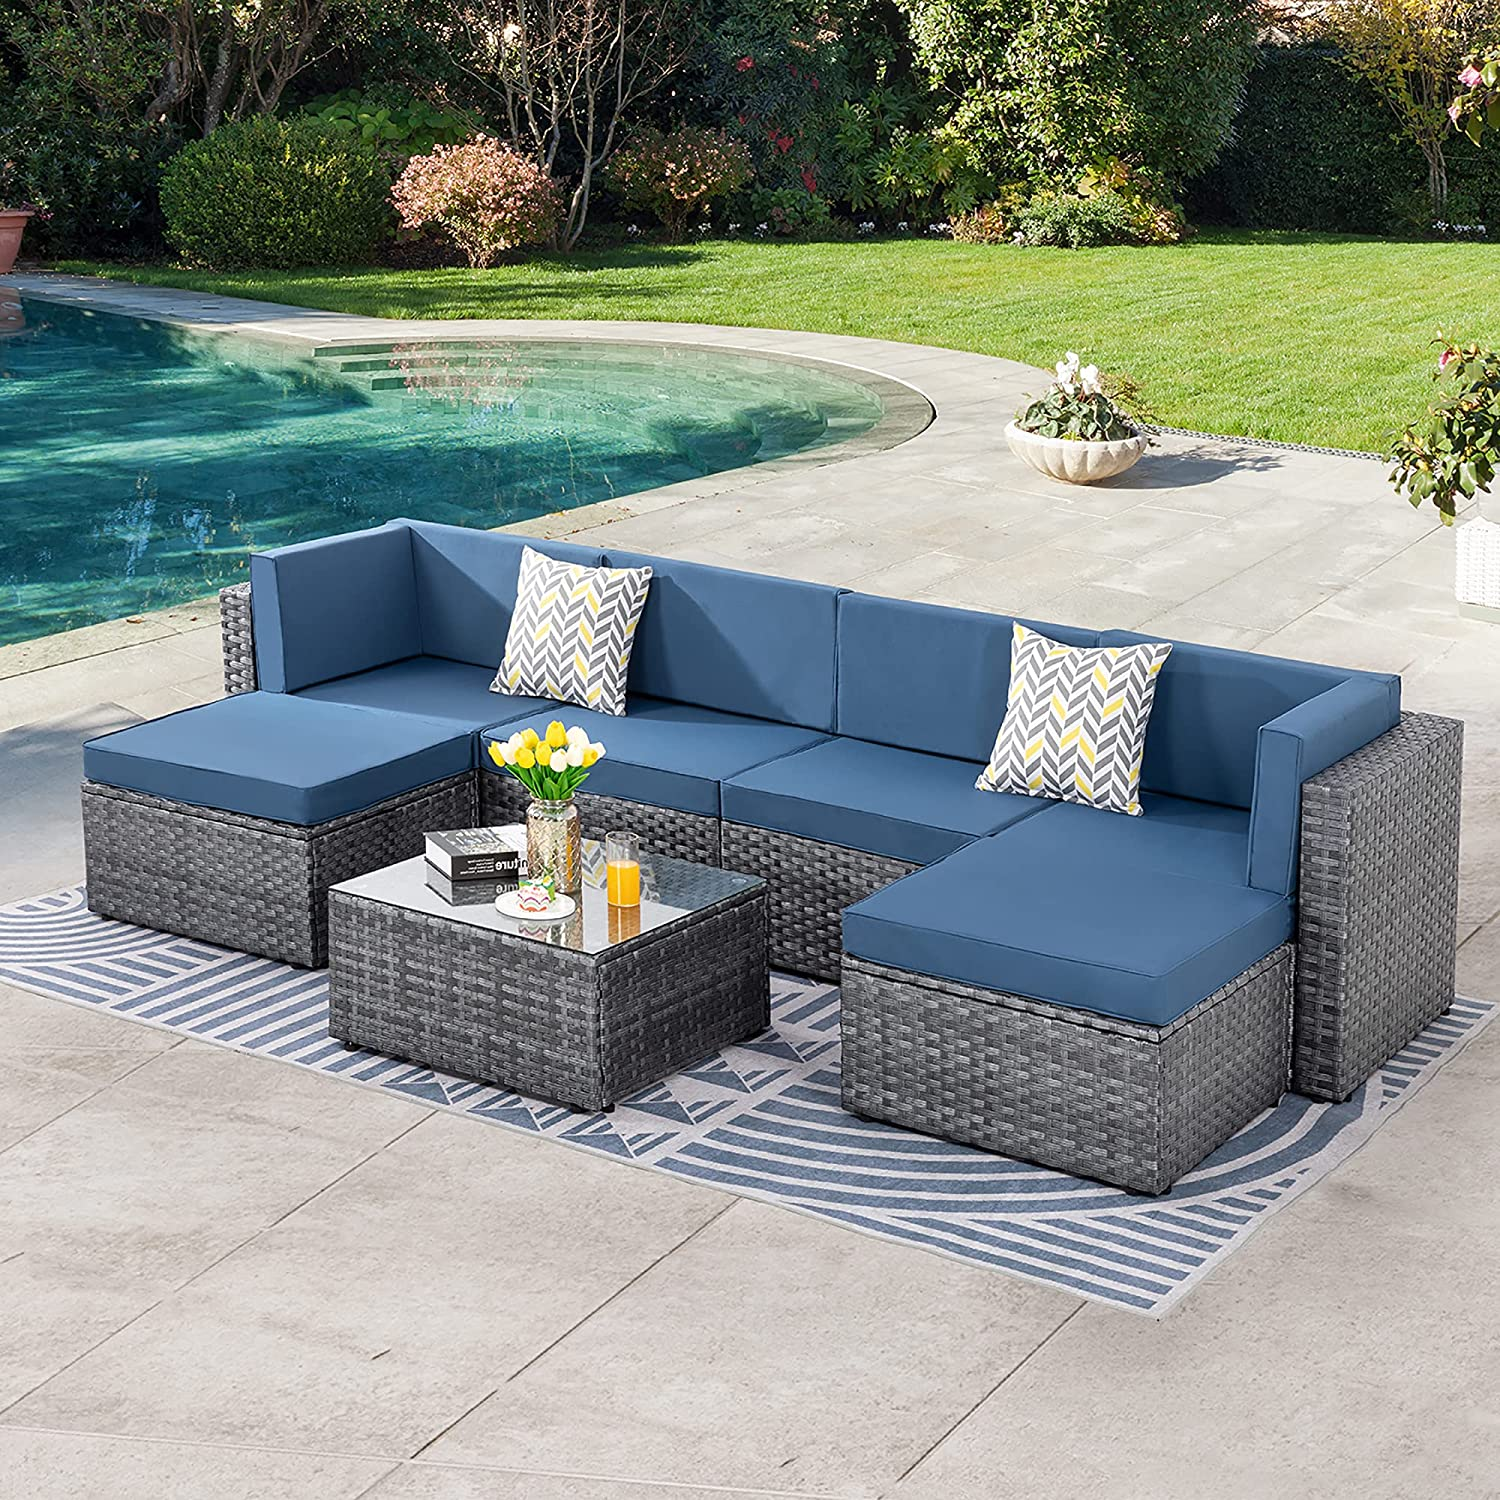 SUNLEI 7pcs Patio Outdoor Furniture Sets Conversation Set,Low Back All-Weather Rattan Sectional Sofa with Tea Table&Washable Couch Cushions&Ottoman(Silver Rattan)(Aegean Blue)